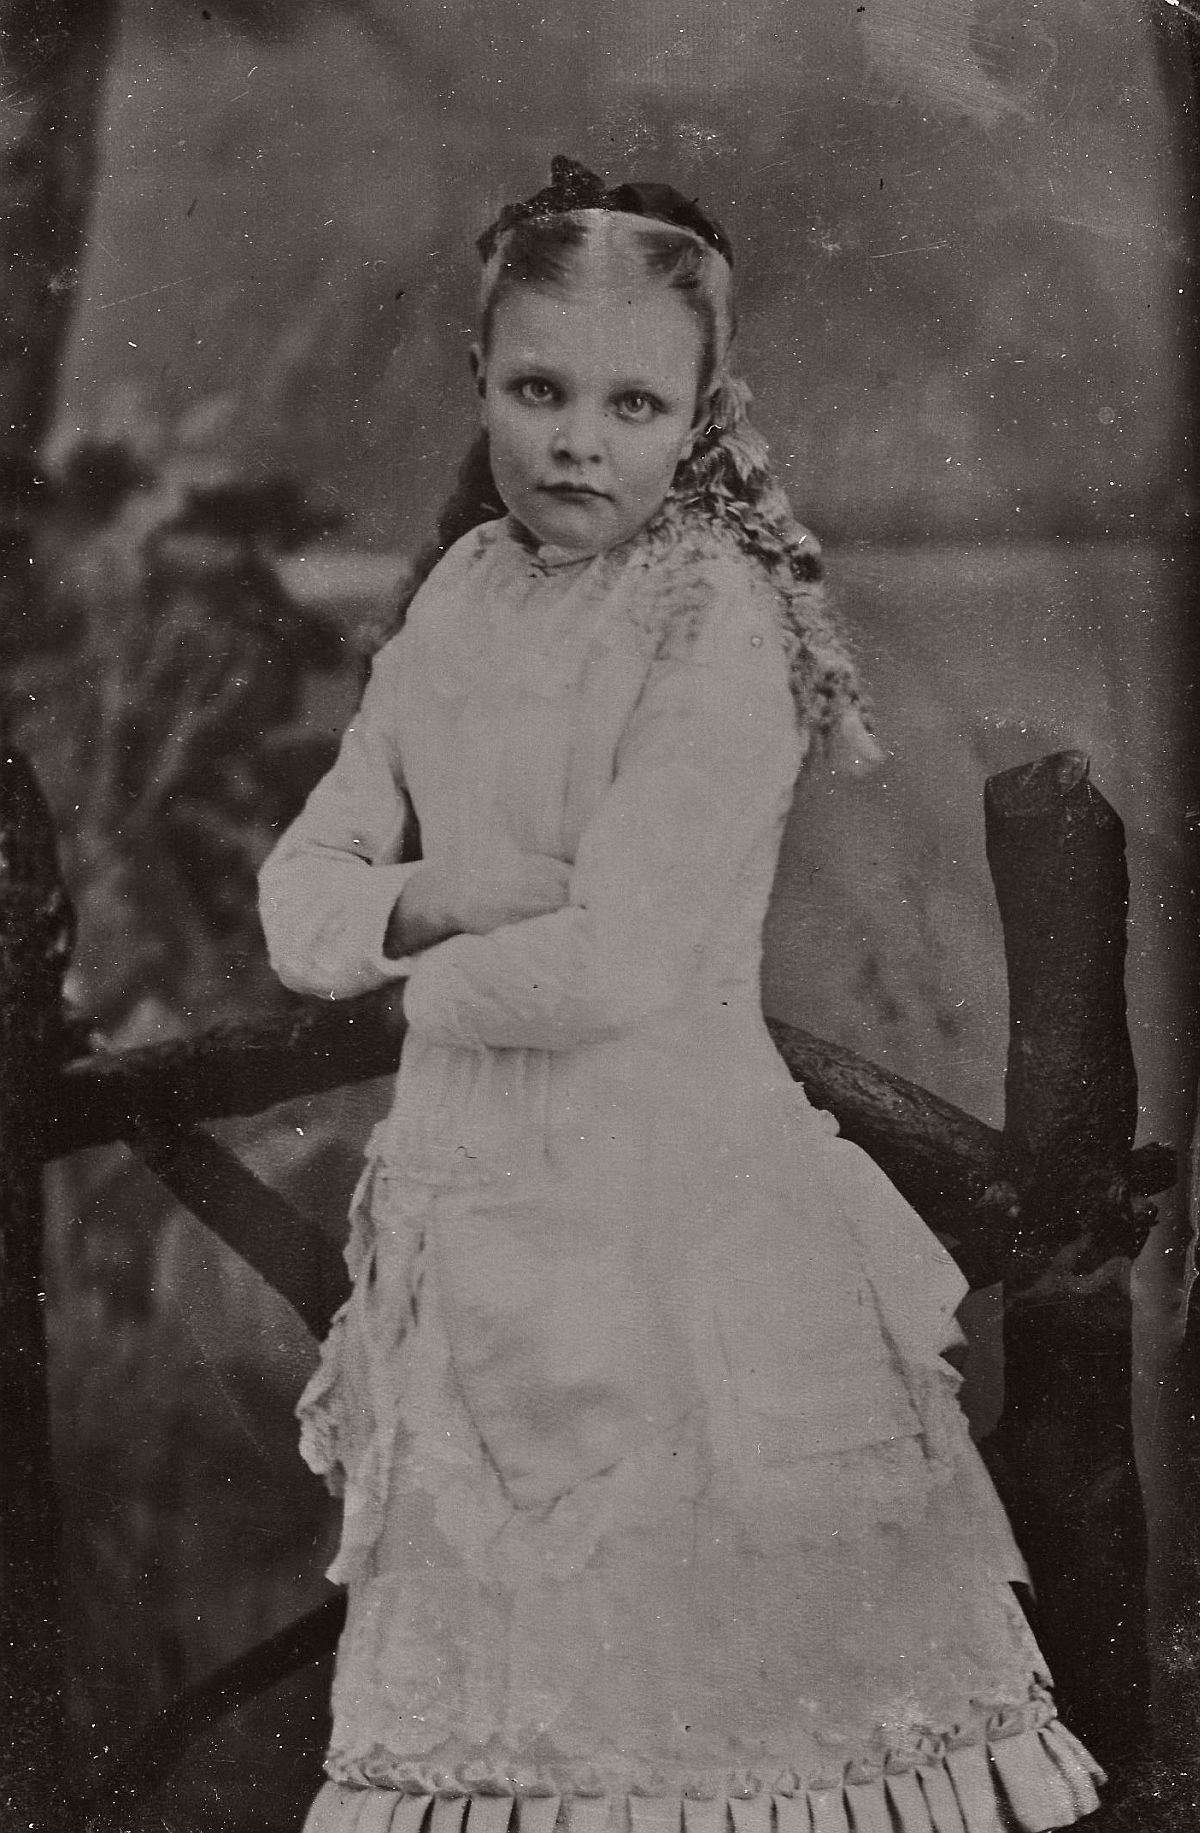 victorian-era-tintype-portraits-of-children-1870s-and-1880s-31